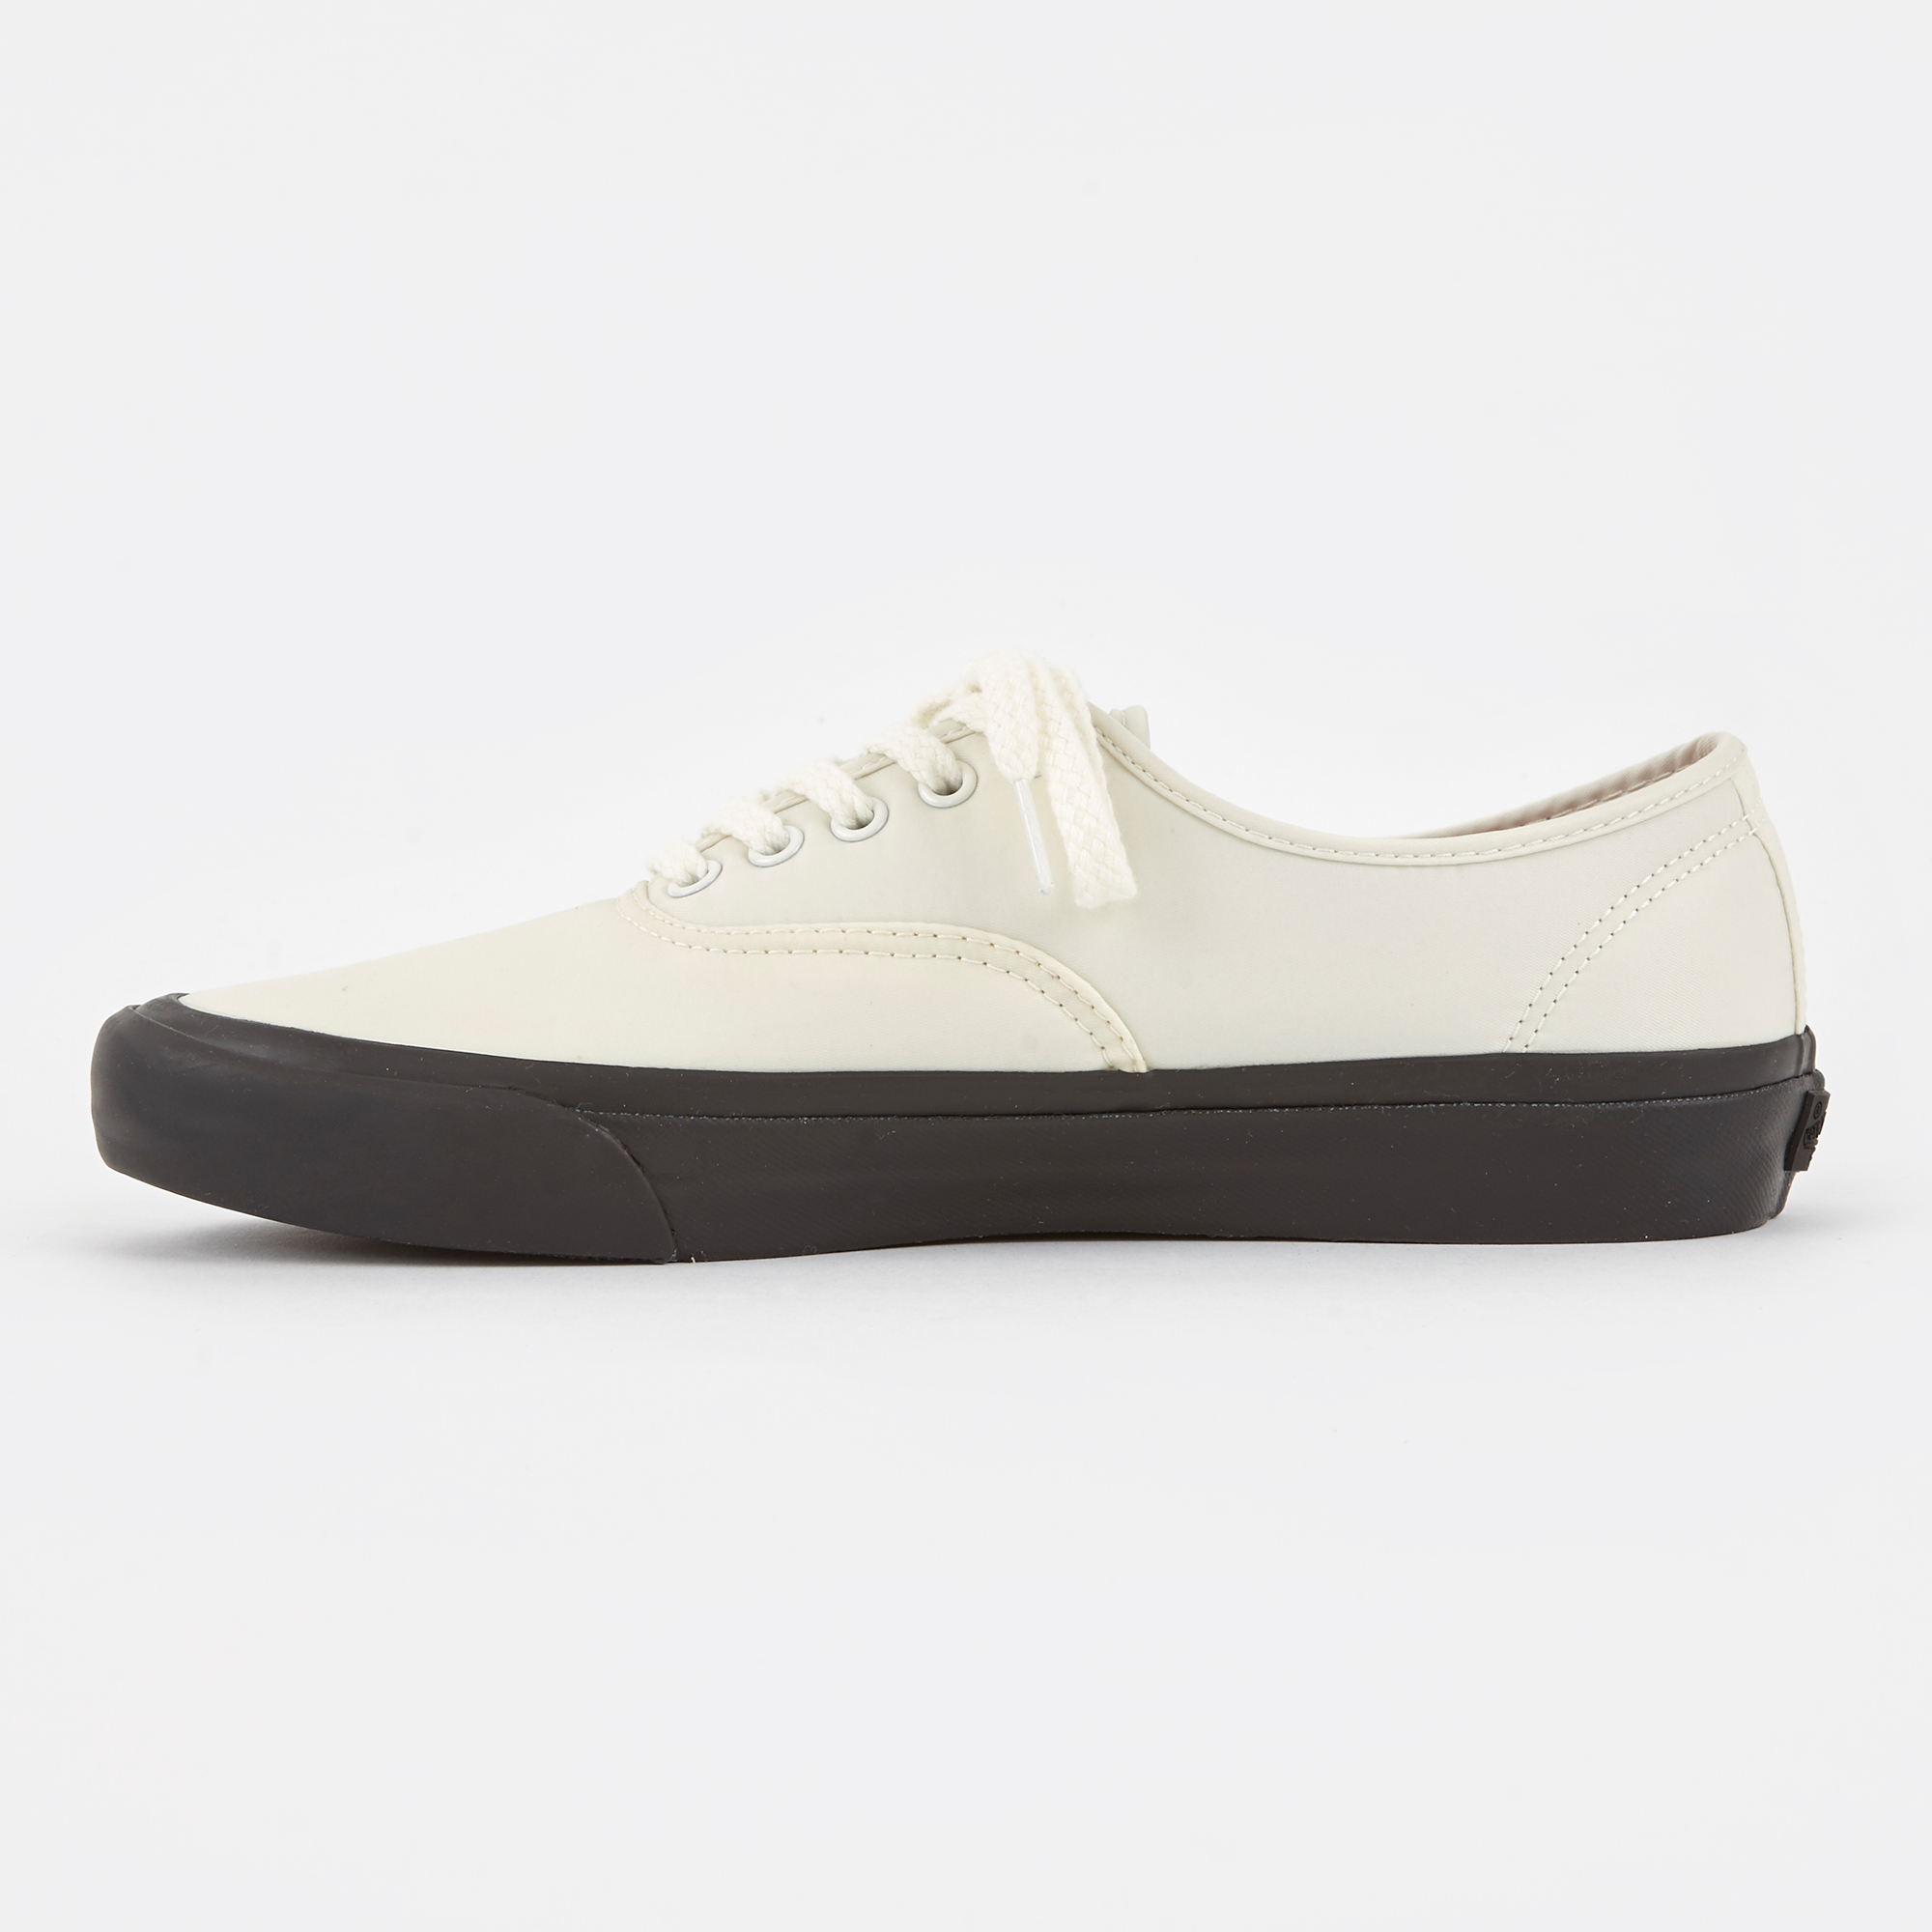 eb9804f16179be Vans Vault x Our Legacy Authentic Pro LX - White